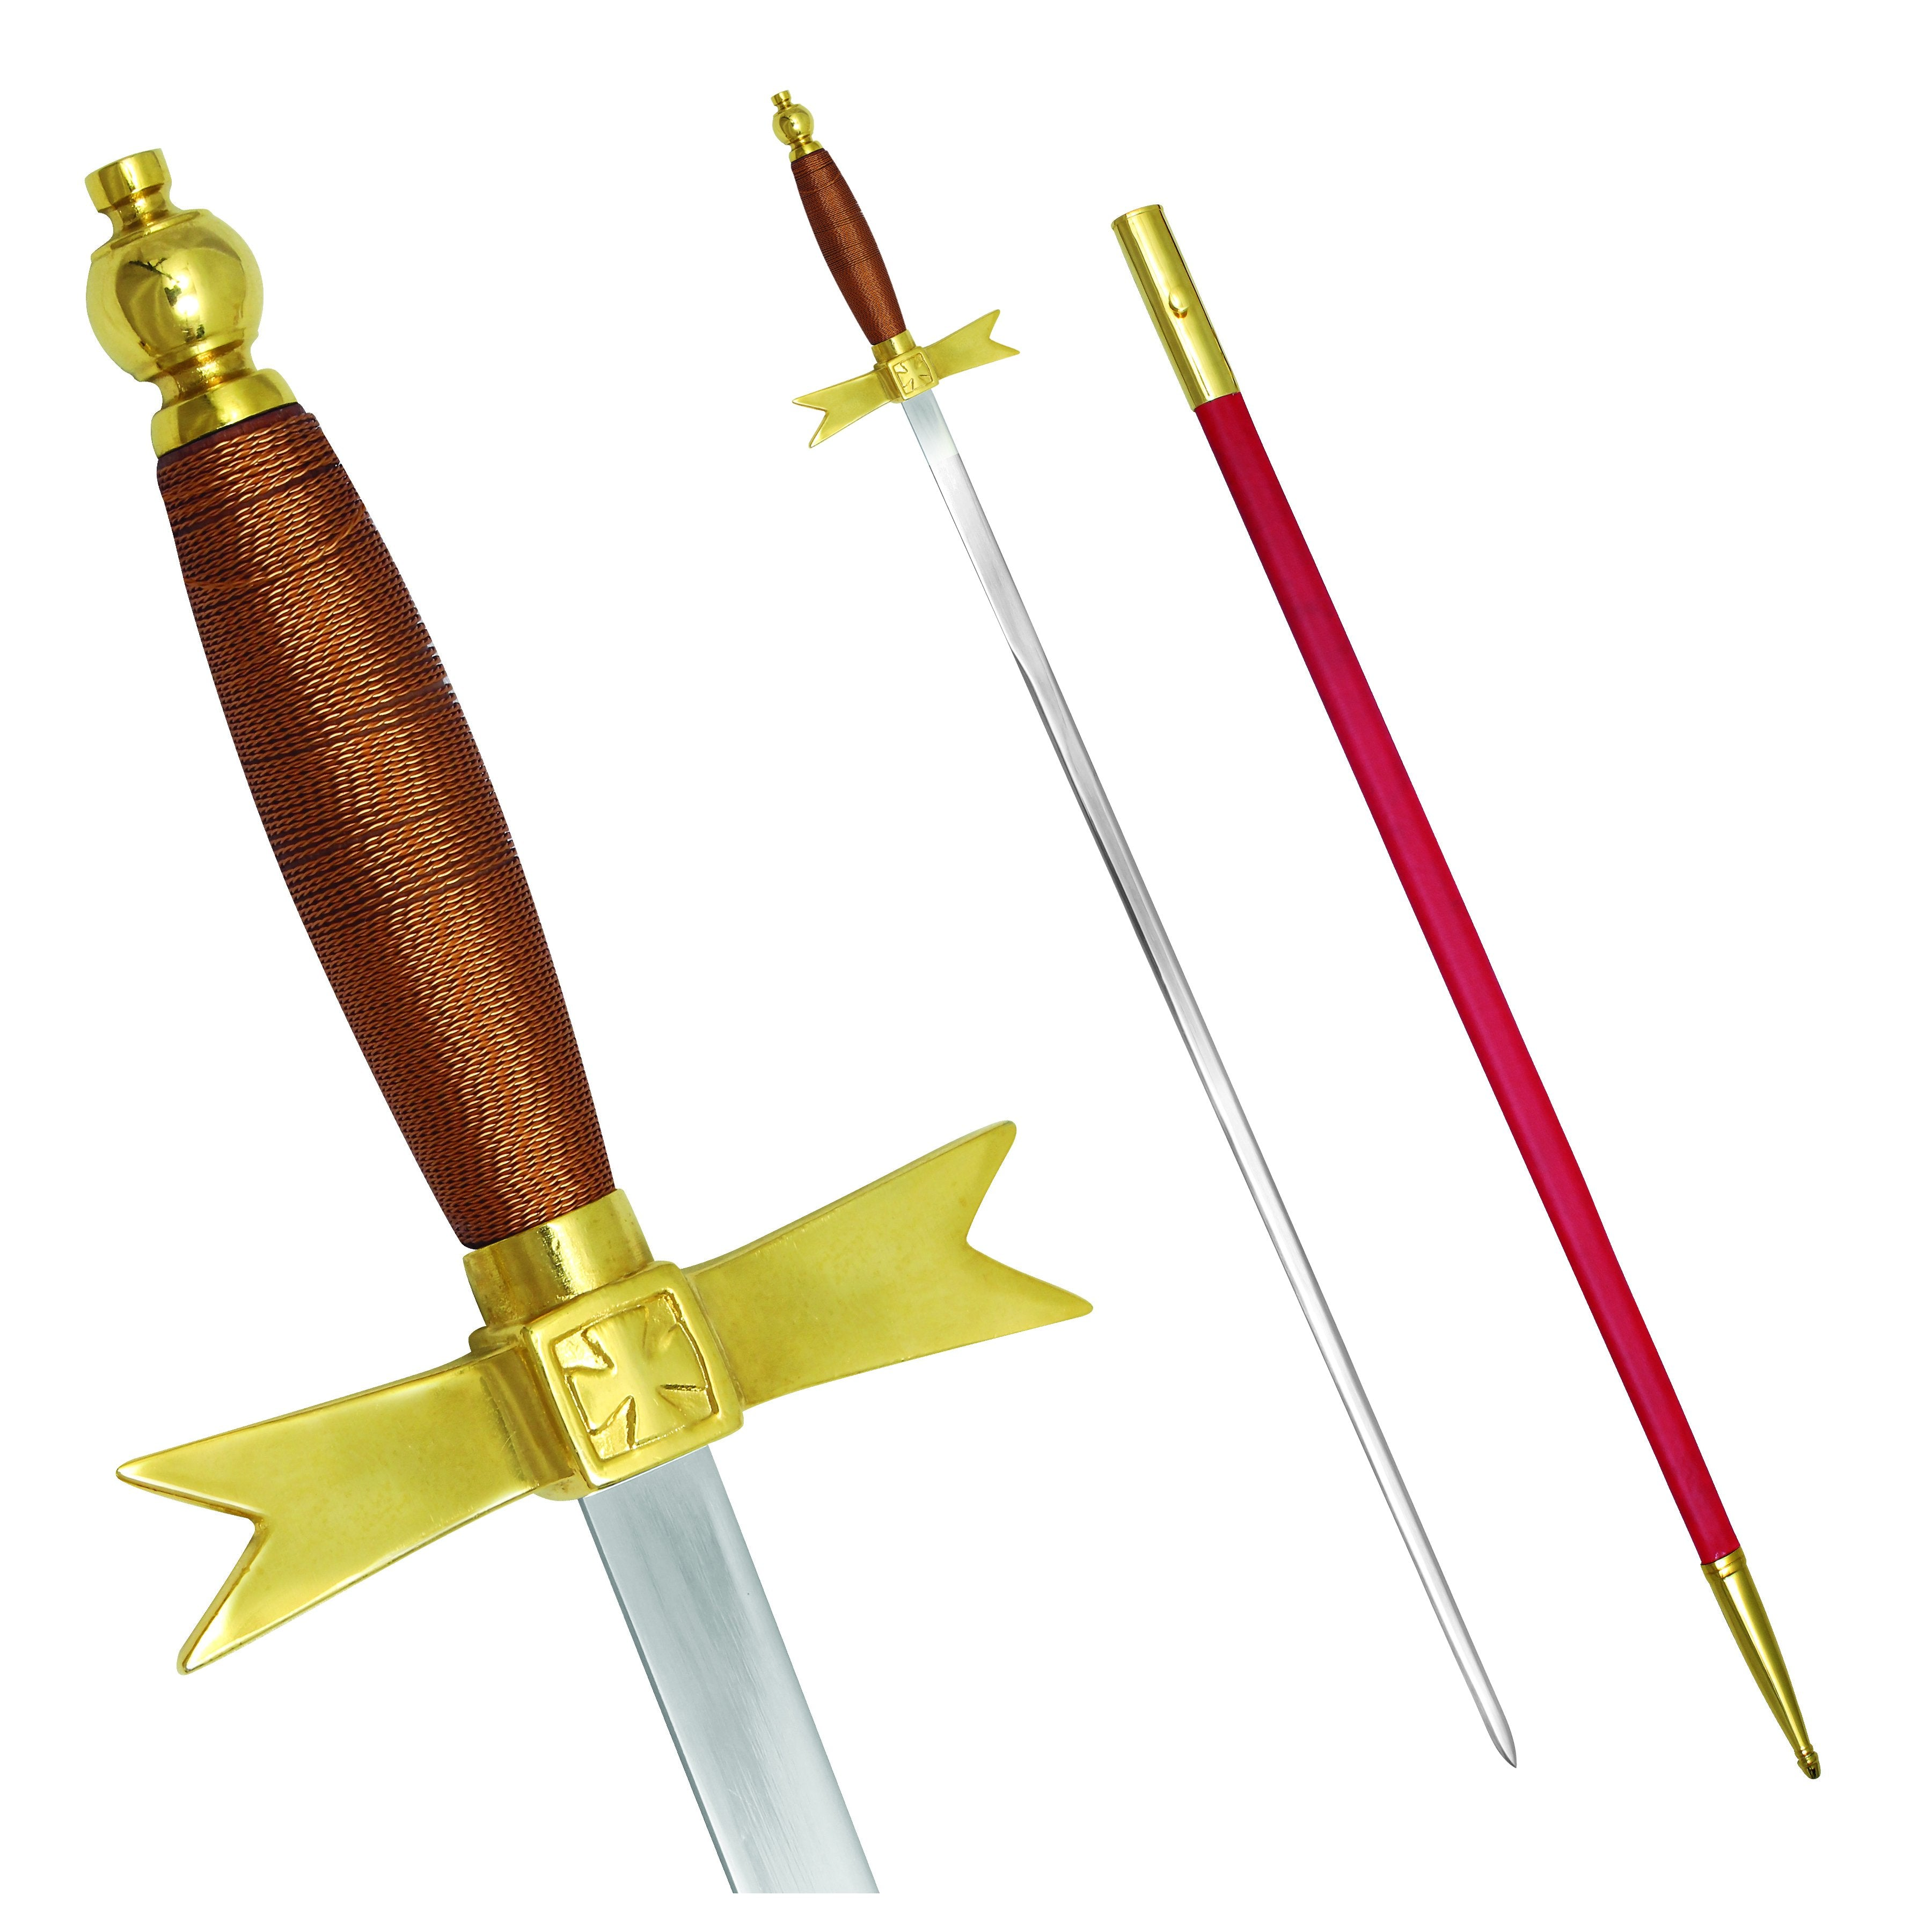 "Masonic Knights Templar Sword with Brown Hilt and Red Scabbard 35 3/4"" + Free Case - Bricks Masons"